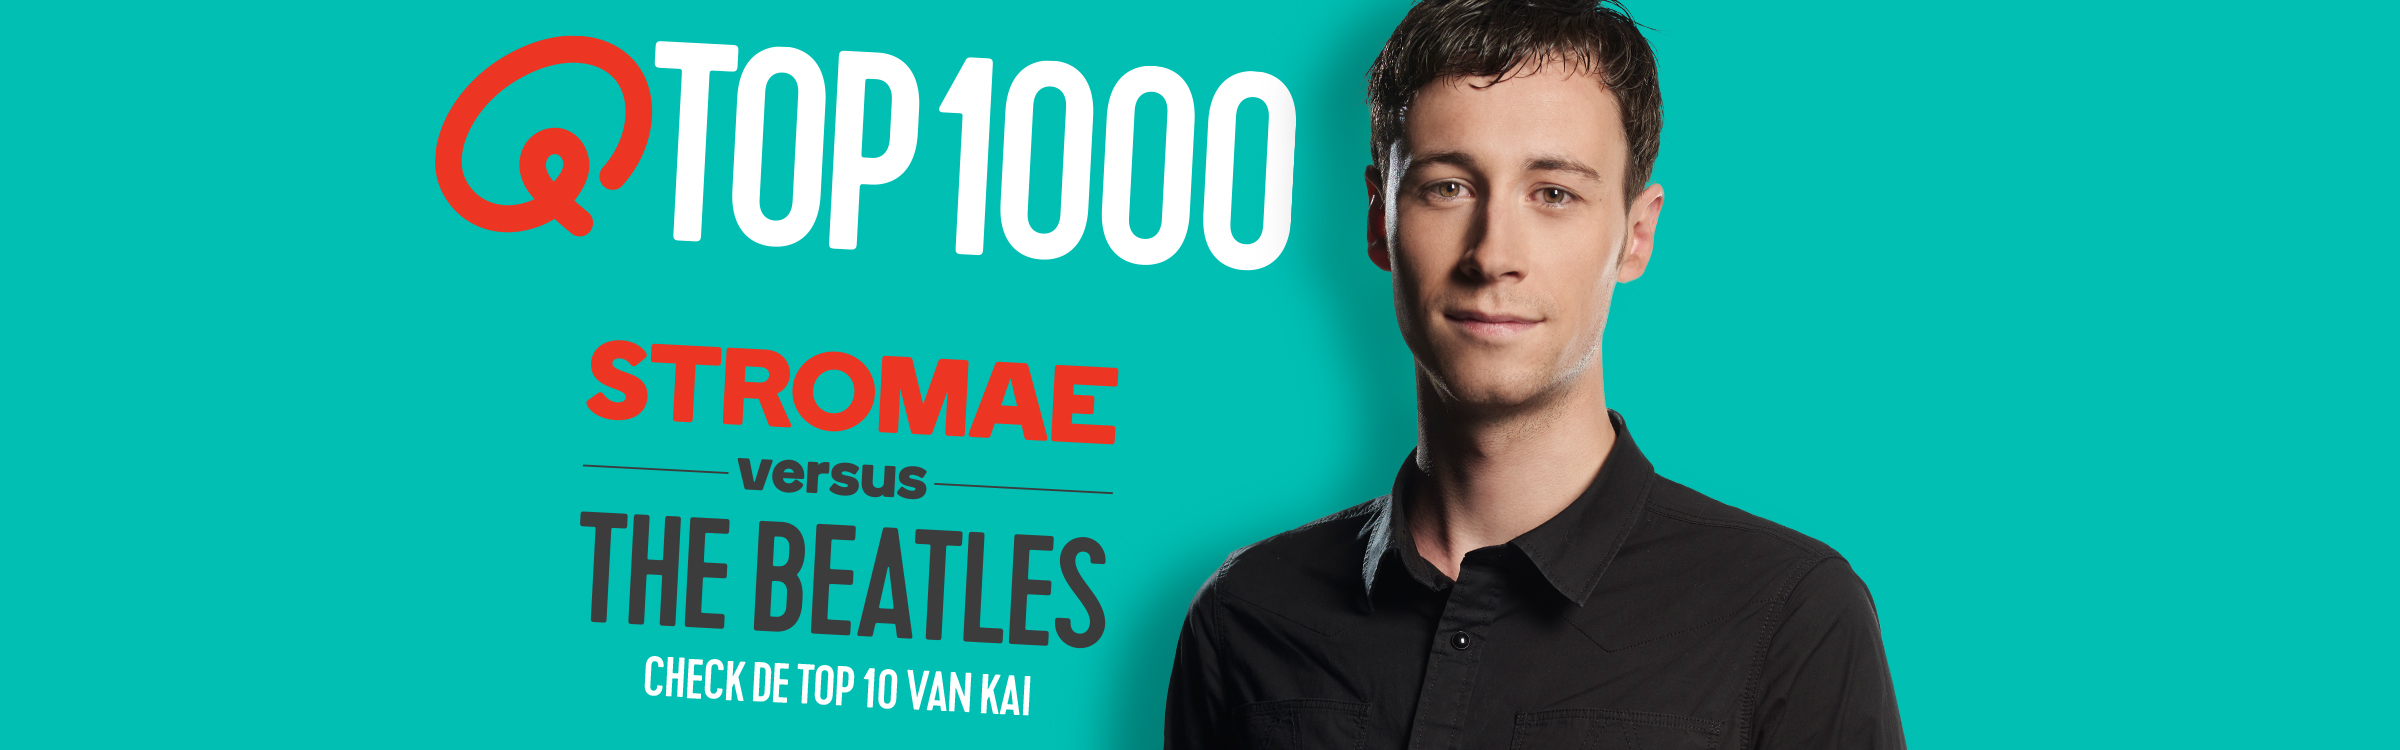 Qmusic actionheader top1000 djs kai